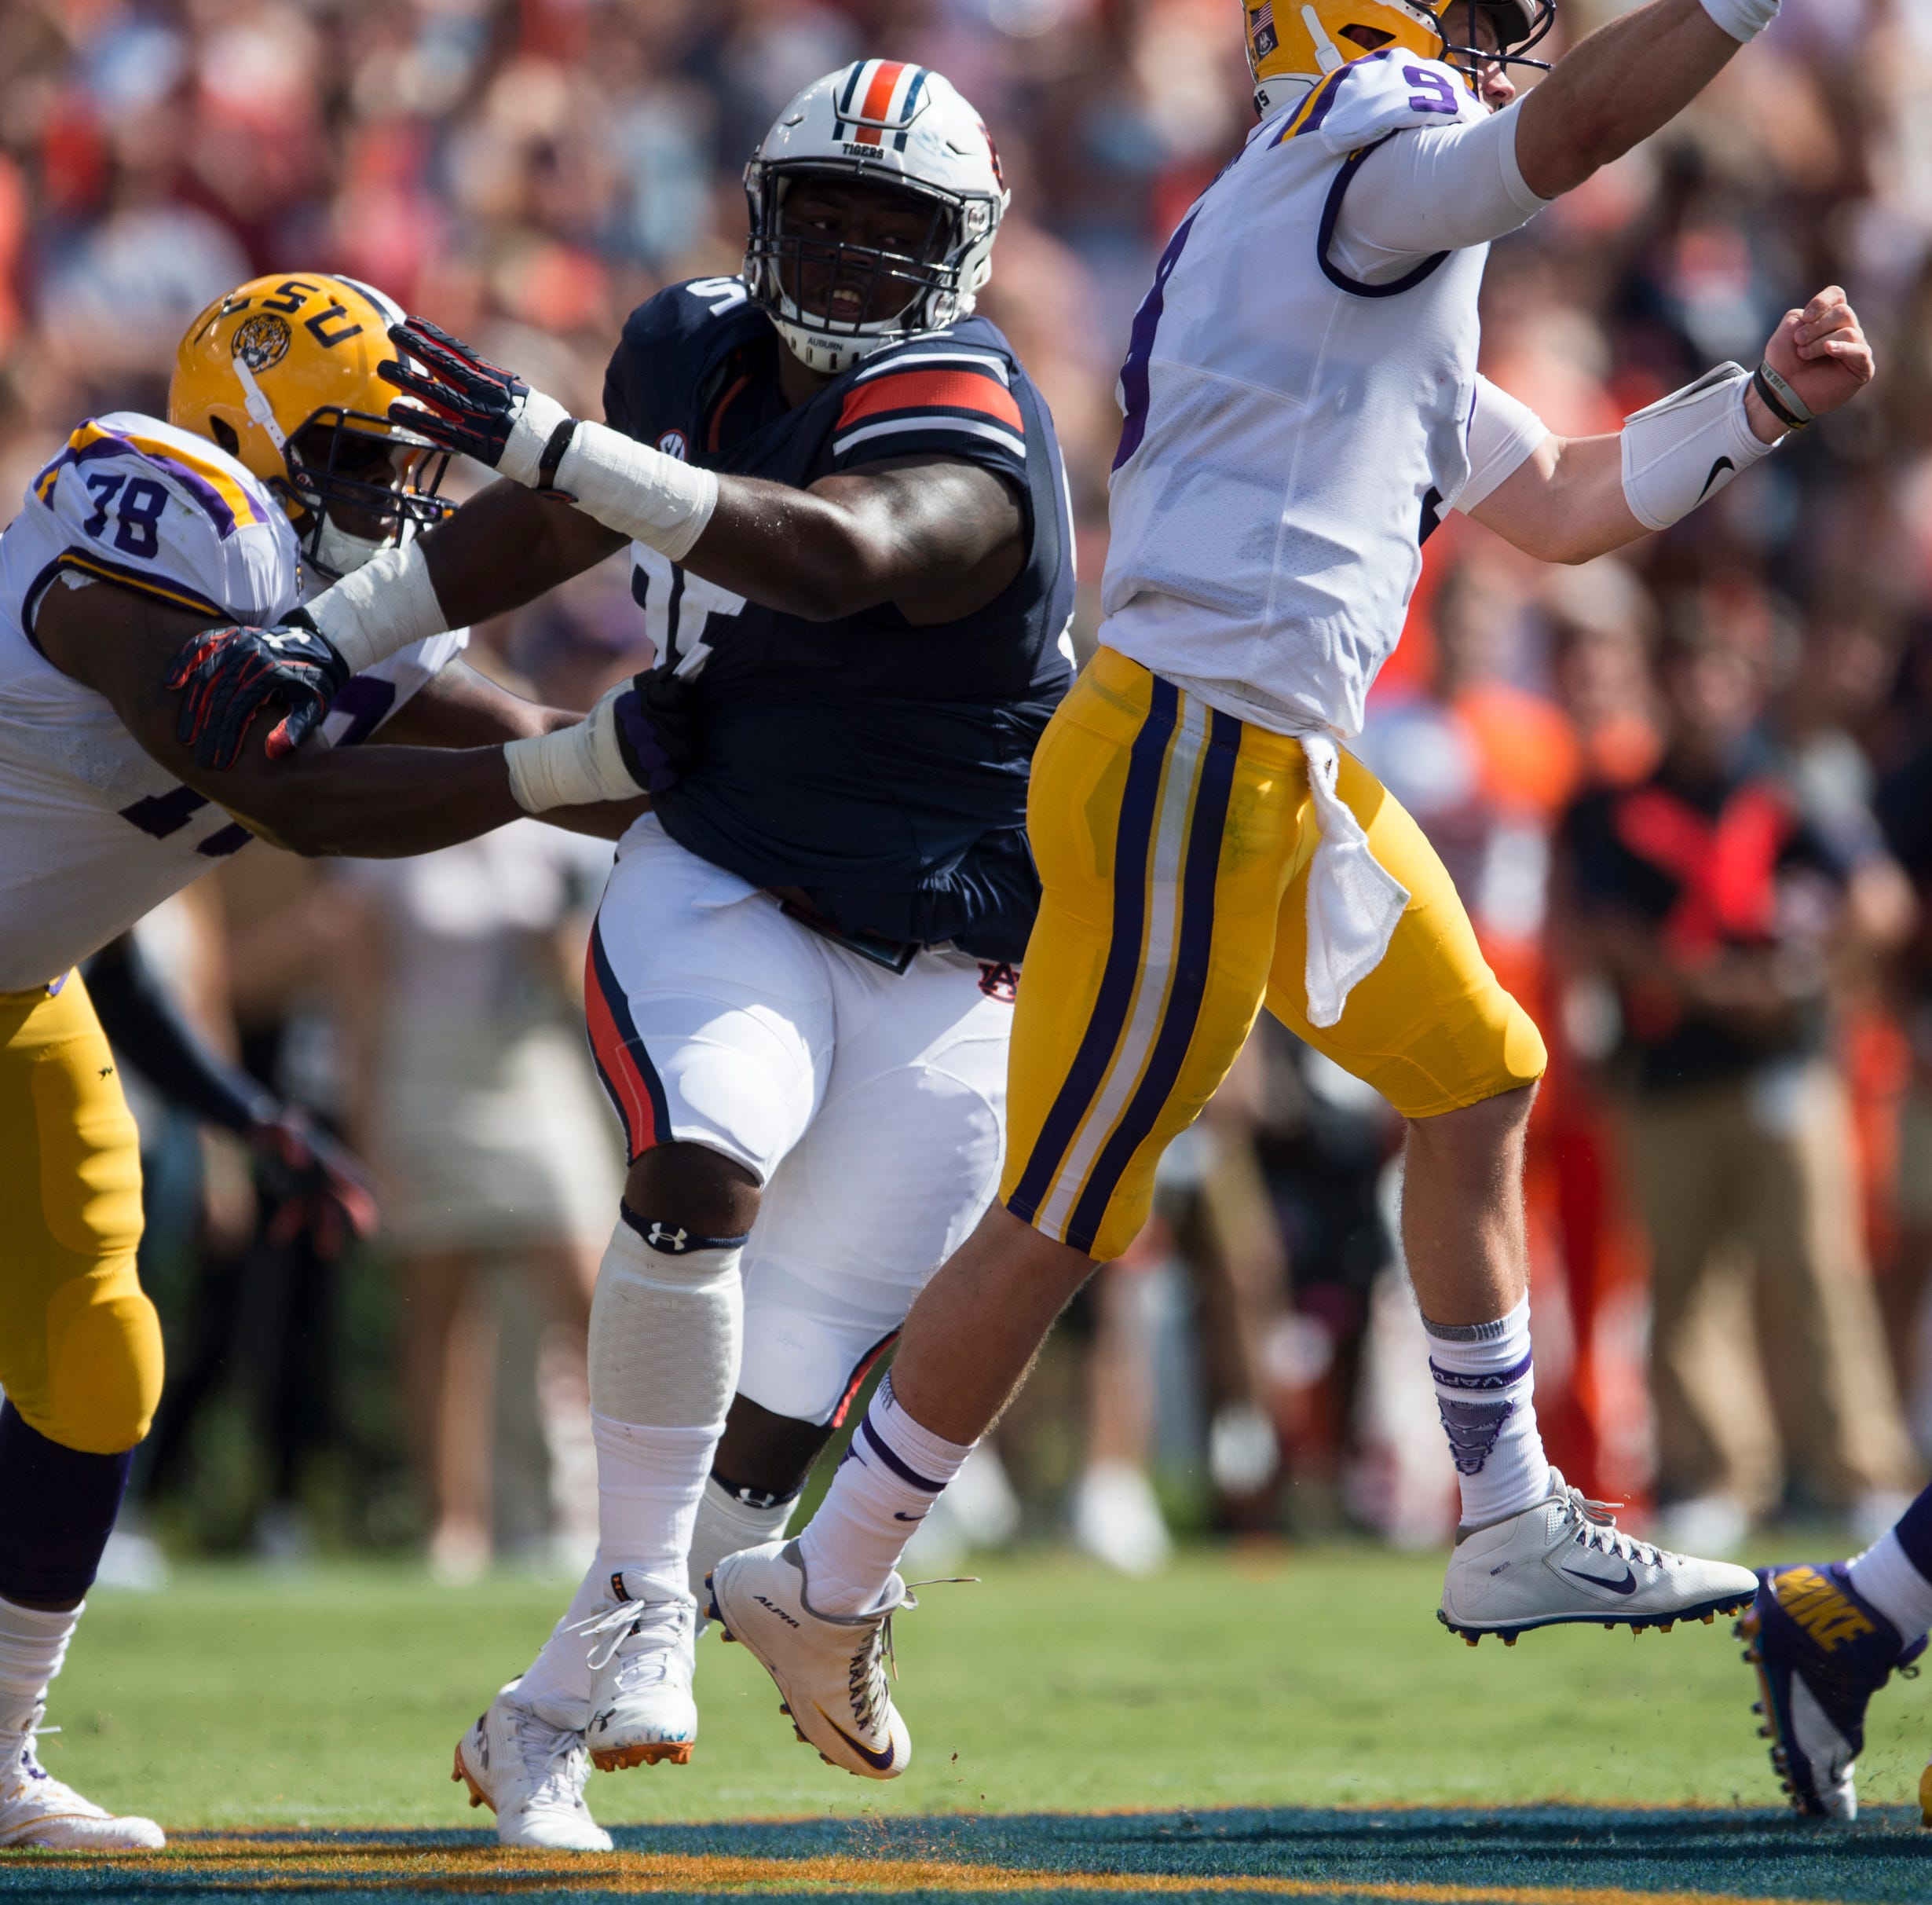 If being on LSU's offensive line is like a marriage, then Tigers had a honeymoon in Auburn